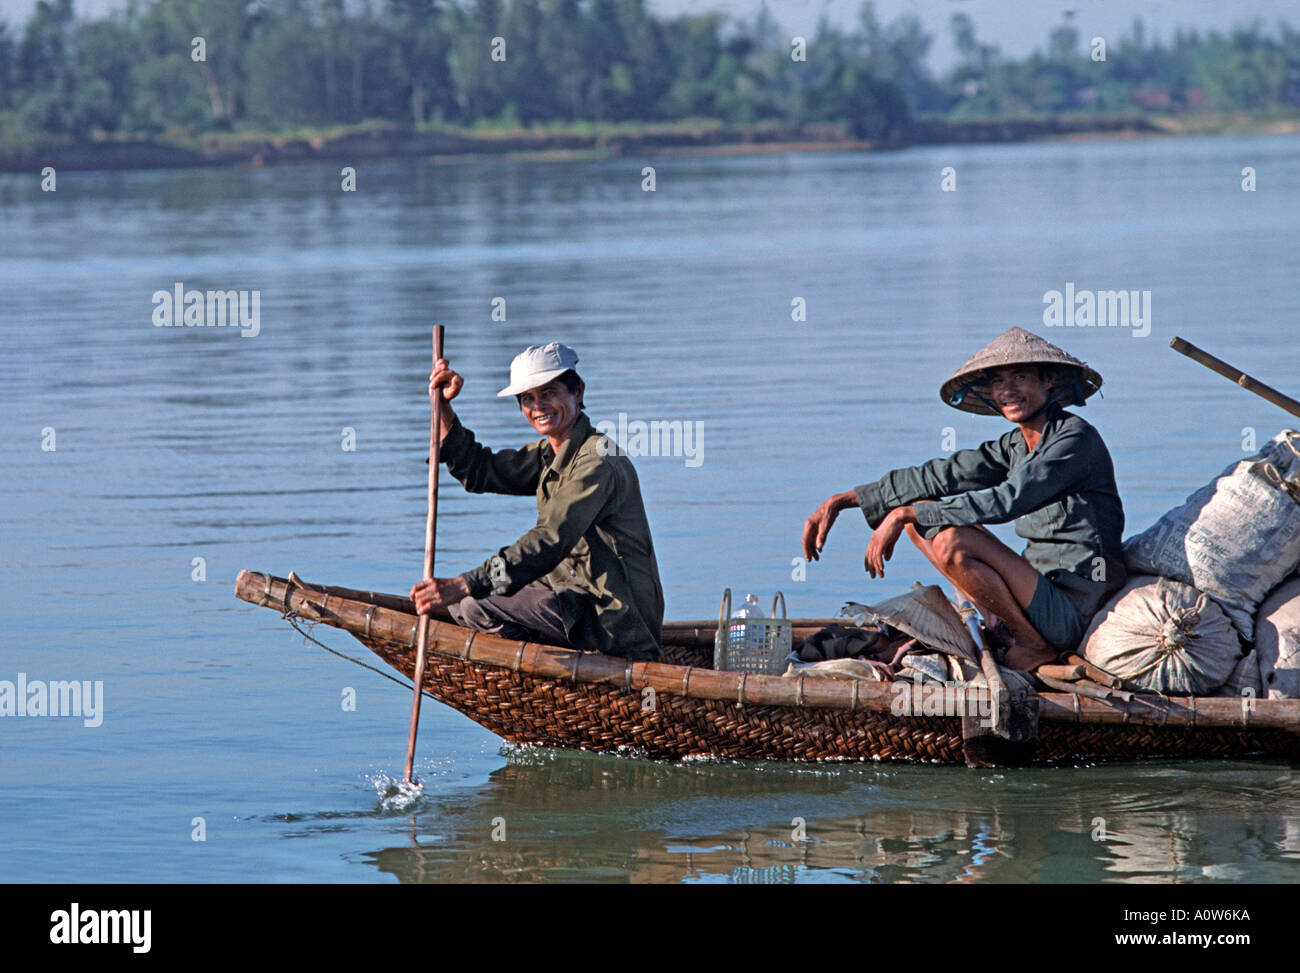 Friendly smiles Transporting goods to market by boat on the Thu Bon River Hoi An Vietnam - Stock Image